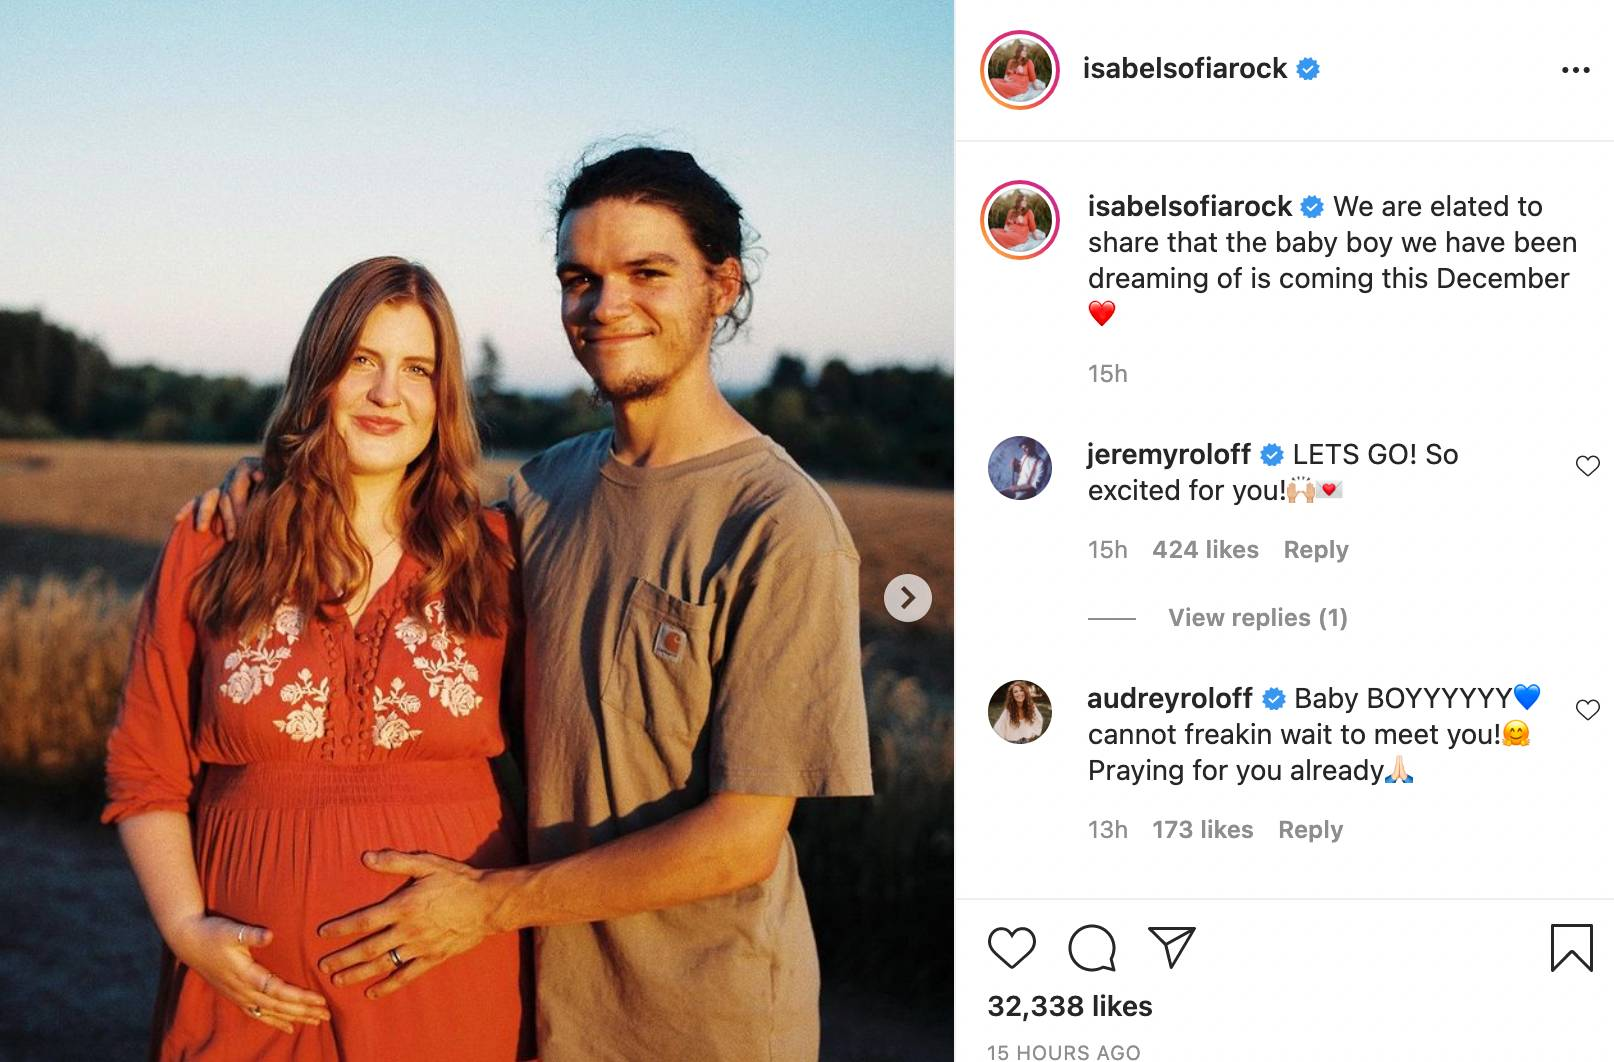 Jacob Roloff and Wife Isabel Rock pregnant